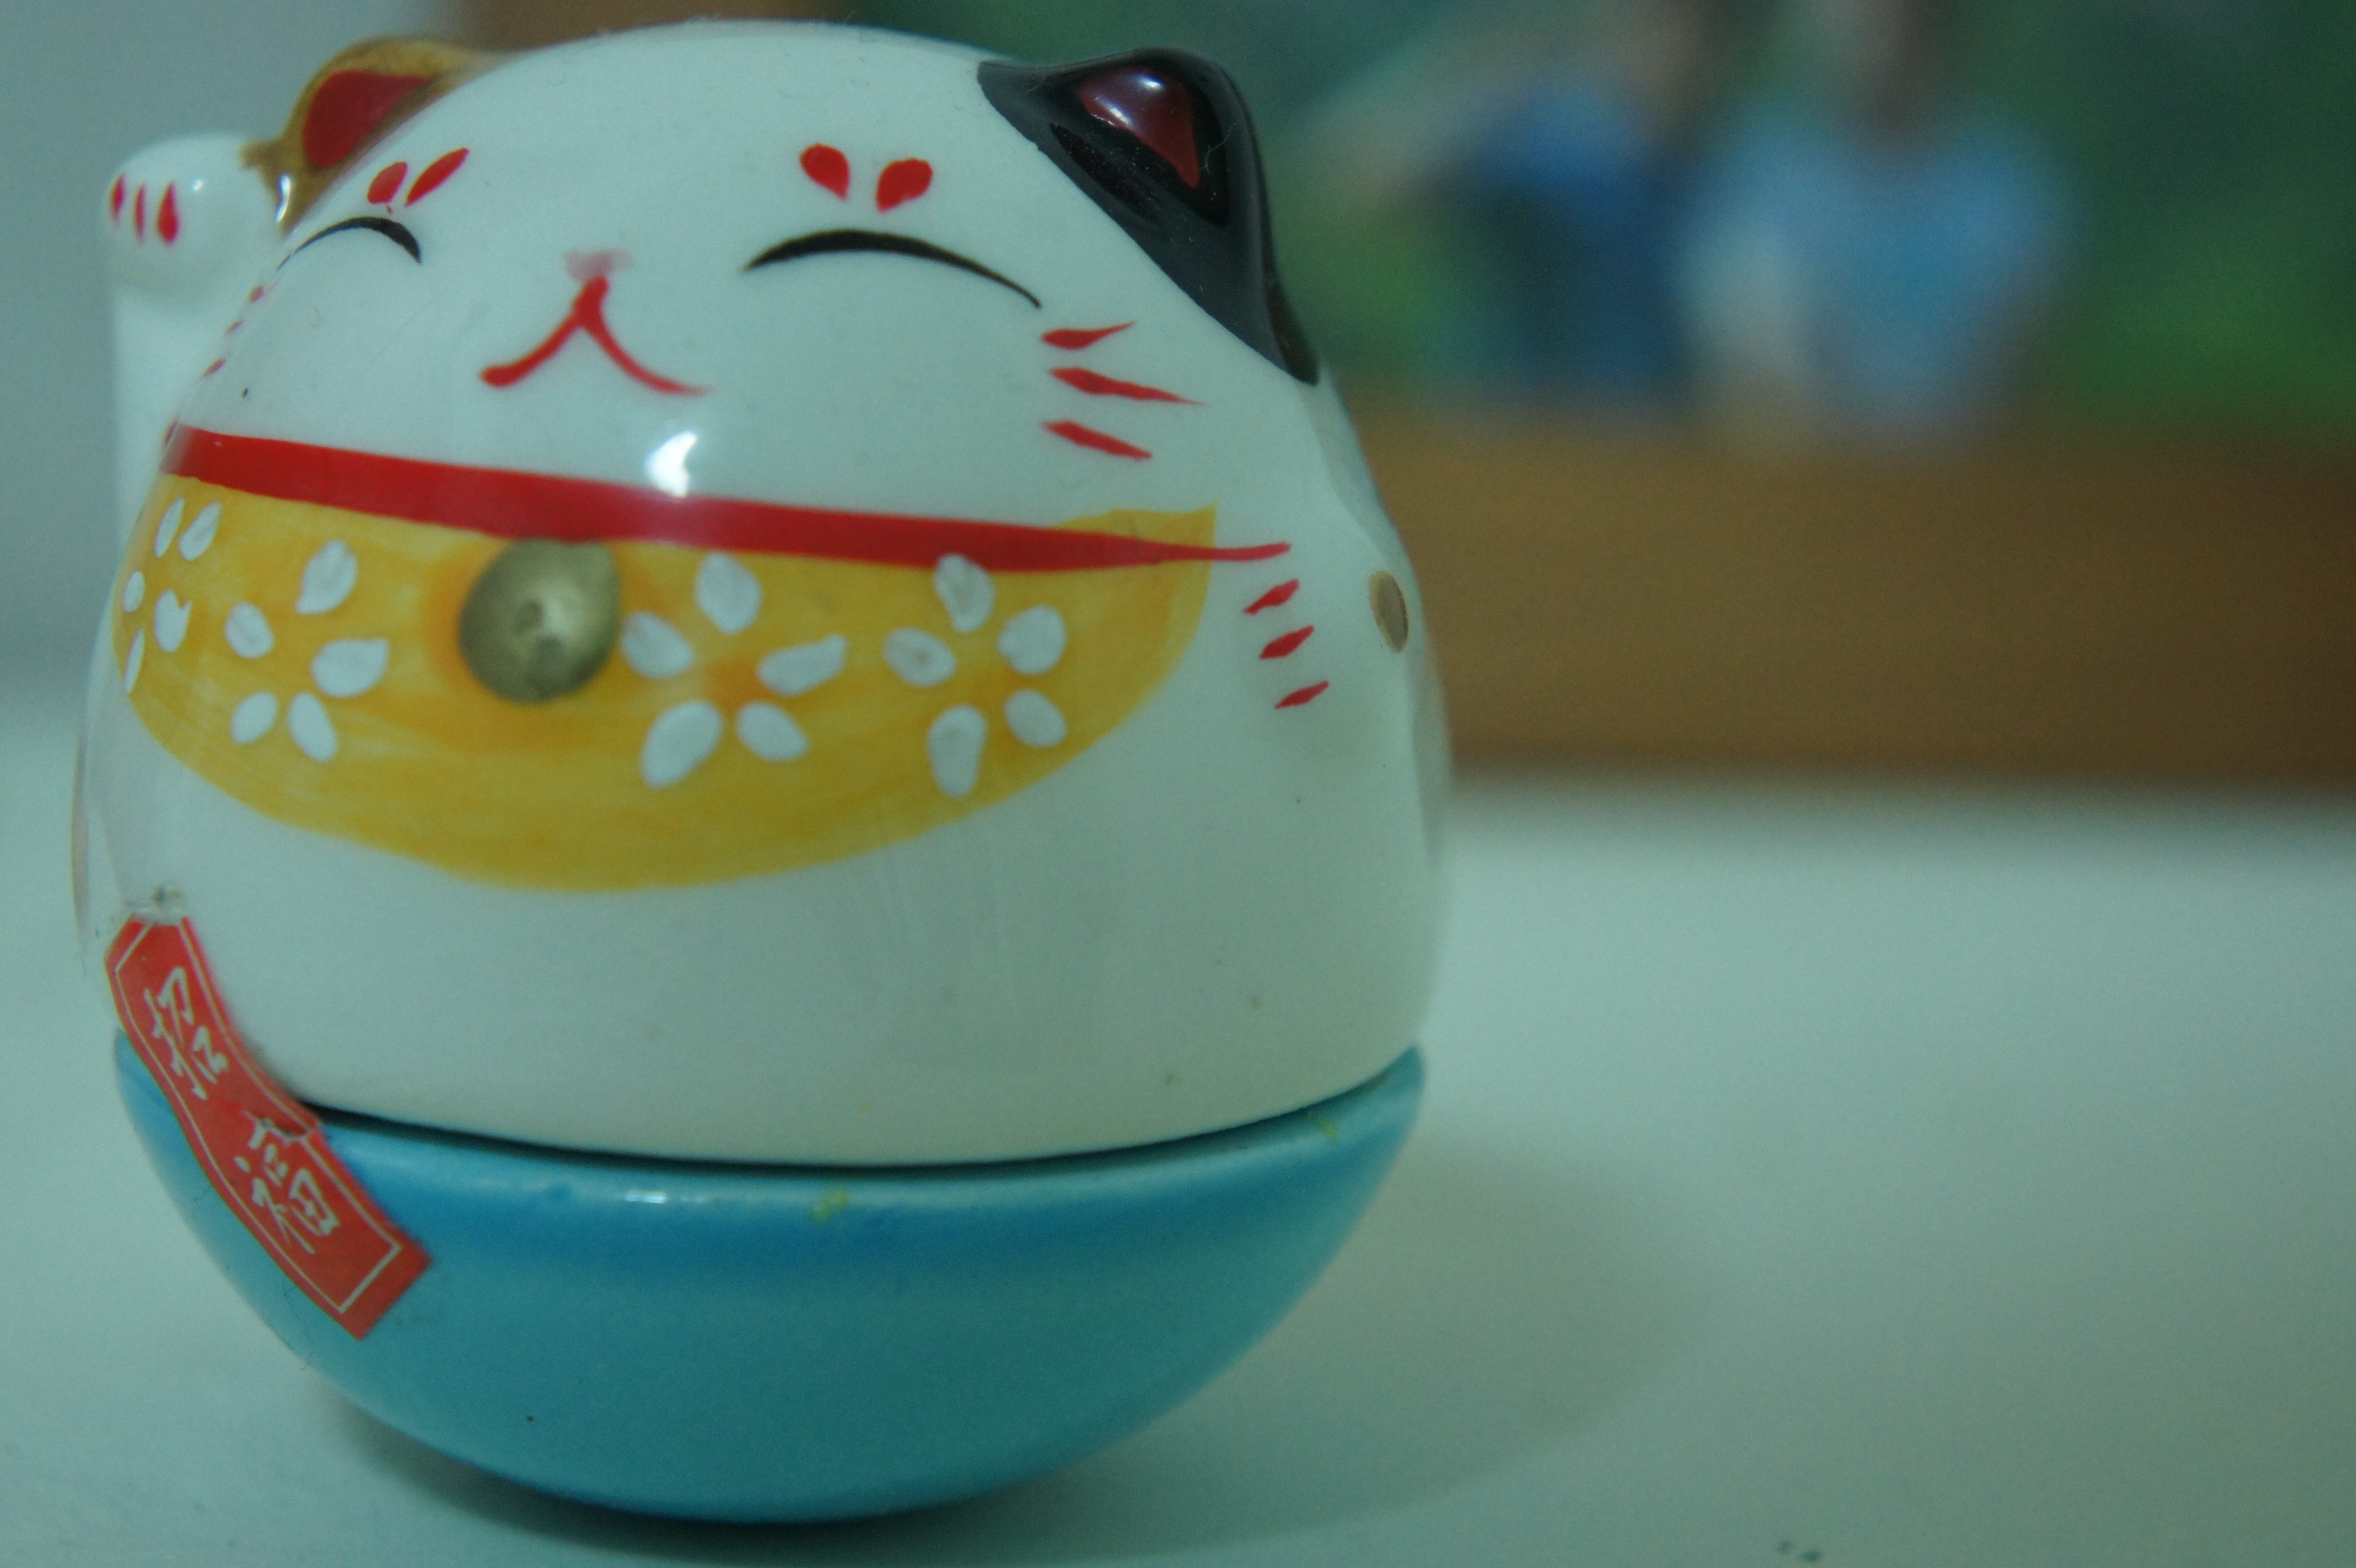 I trust lucky cat to help me make good decisions